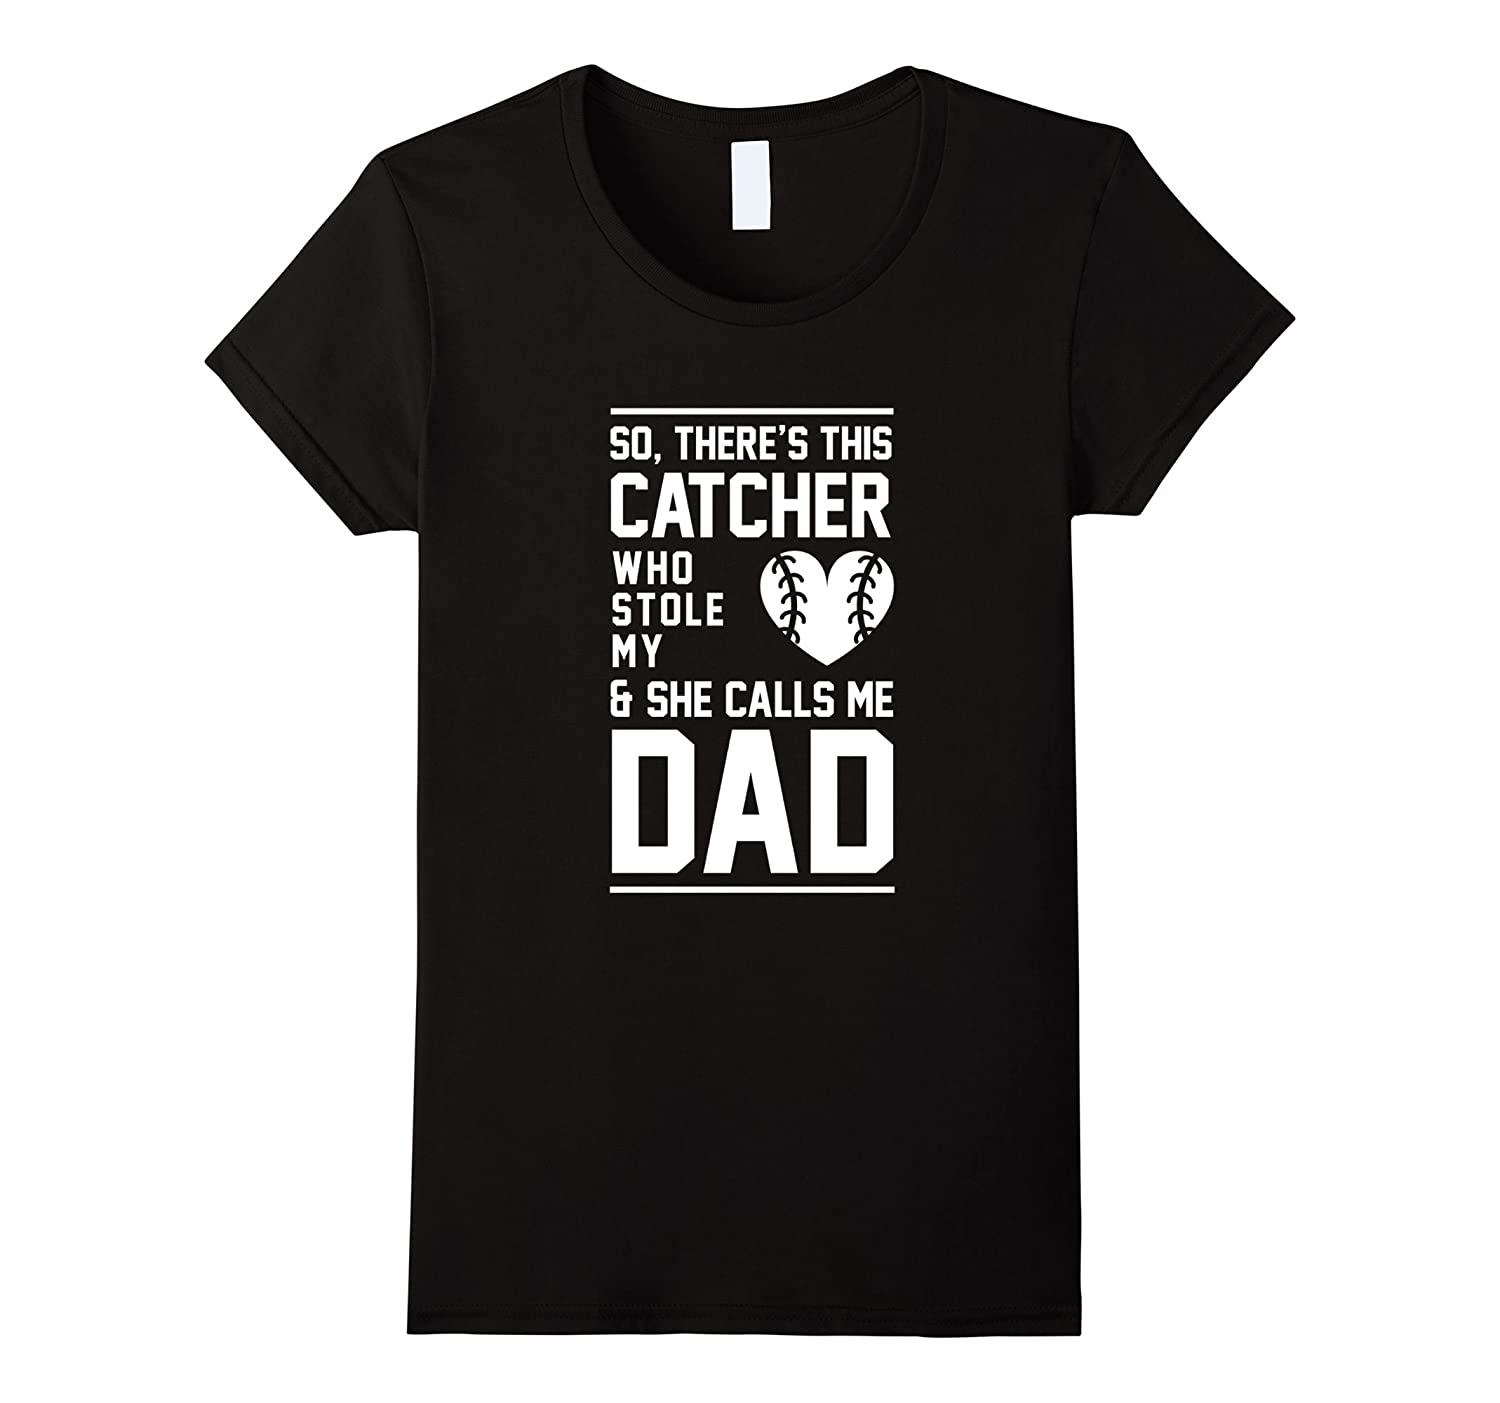 Catcher Who Stole My Heart, She Calls Me Dad Softball Tee